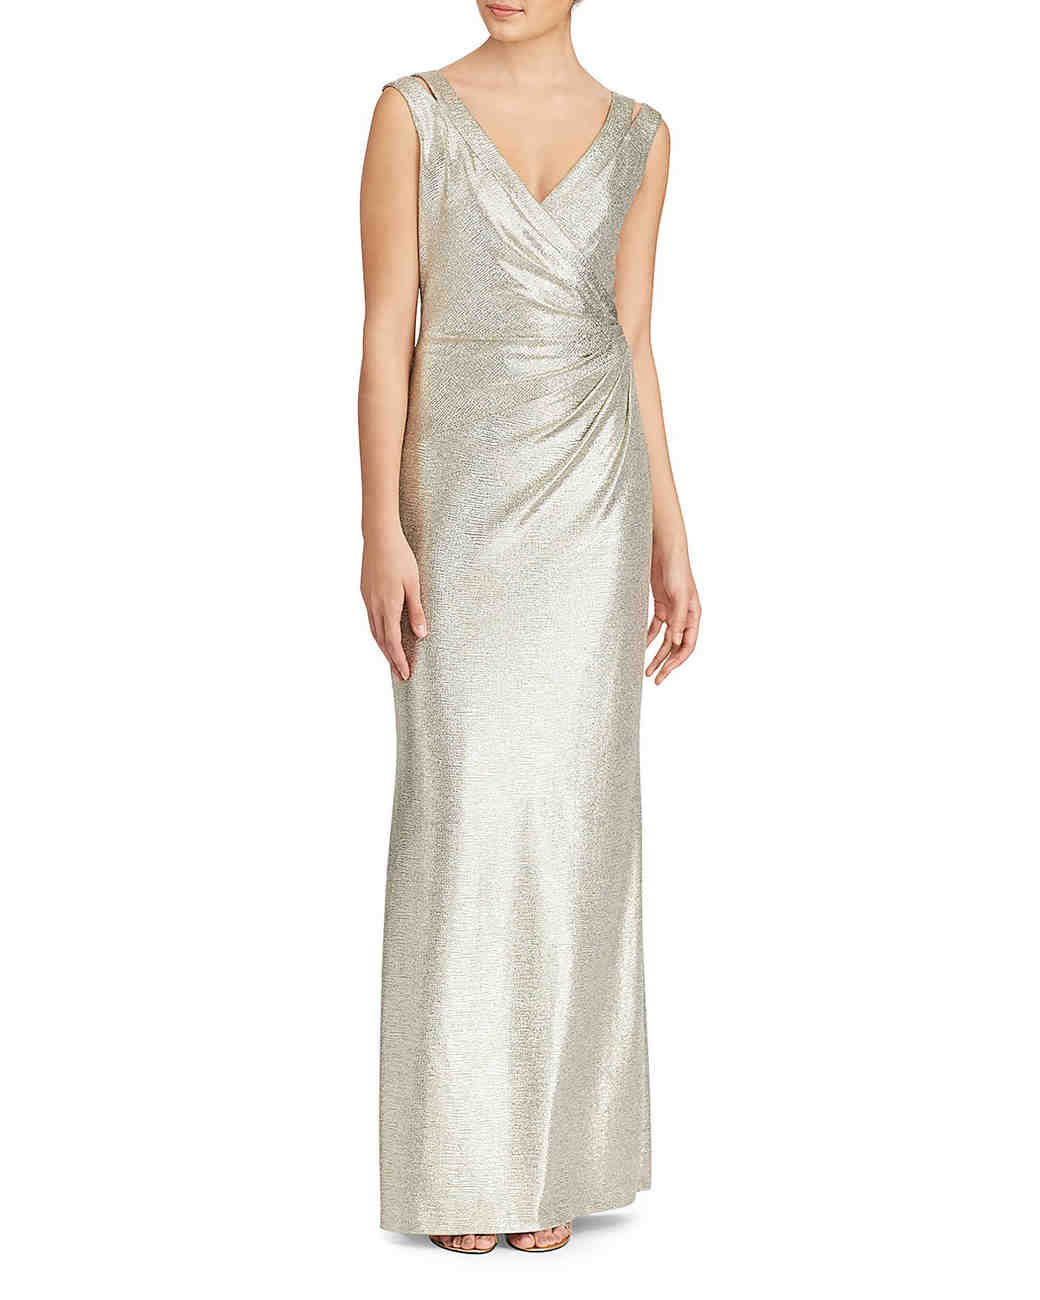 35 Sleeveless Mother Of The Bride And Groom Dresses Martha Stewart